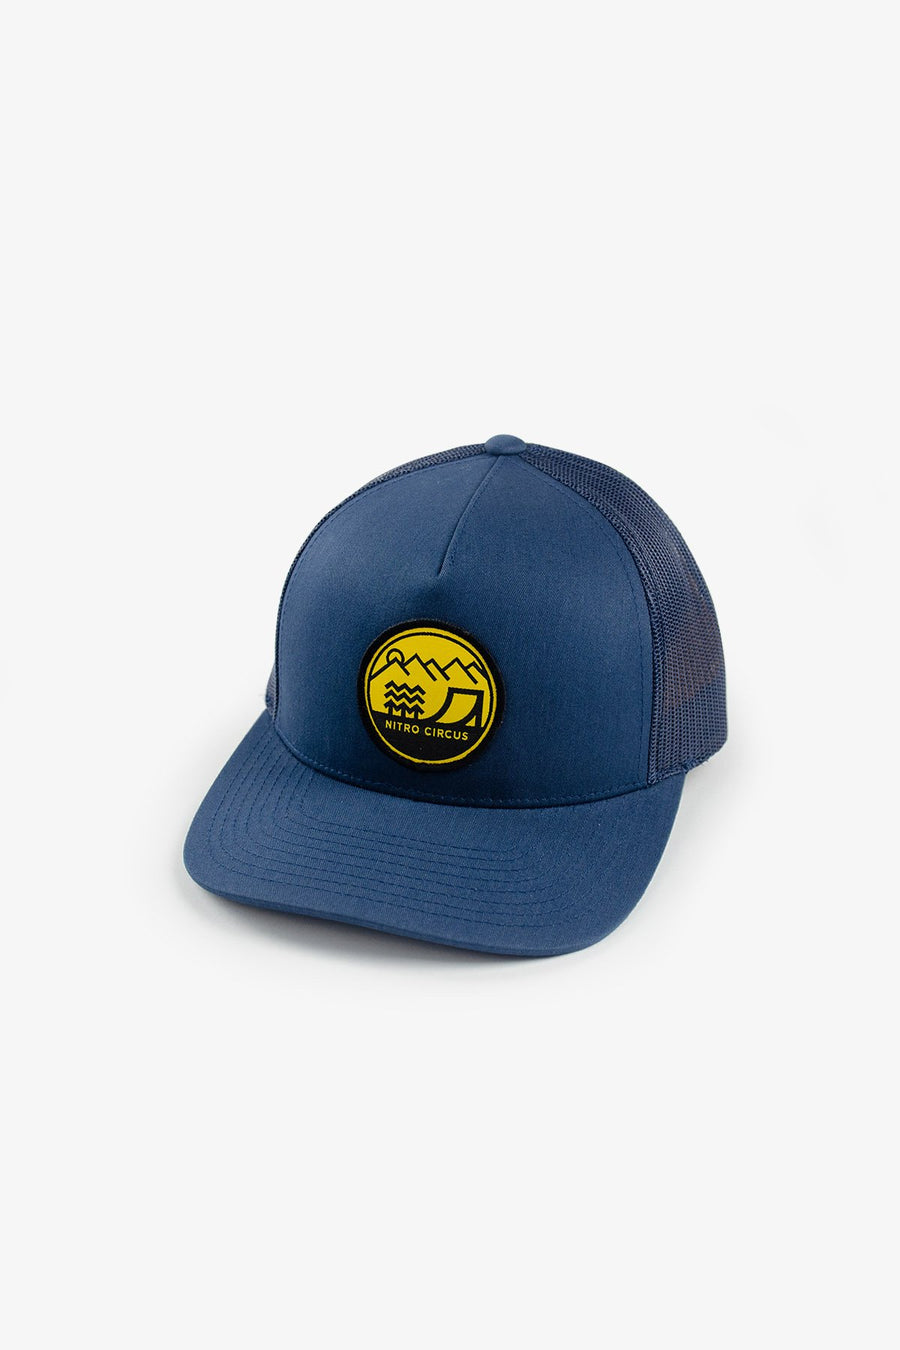 Enjoy the View Trucker Hat Navy